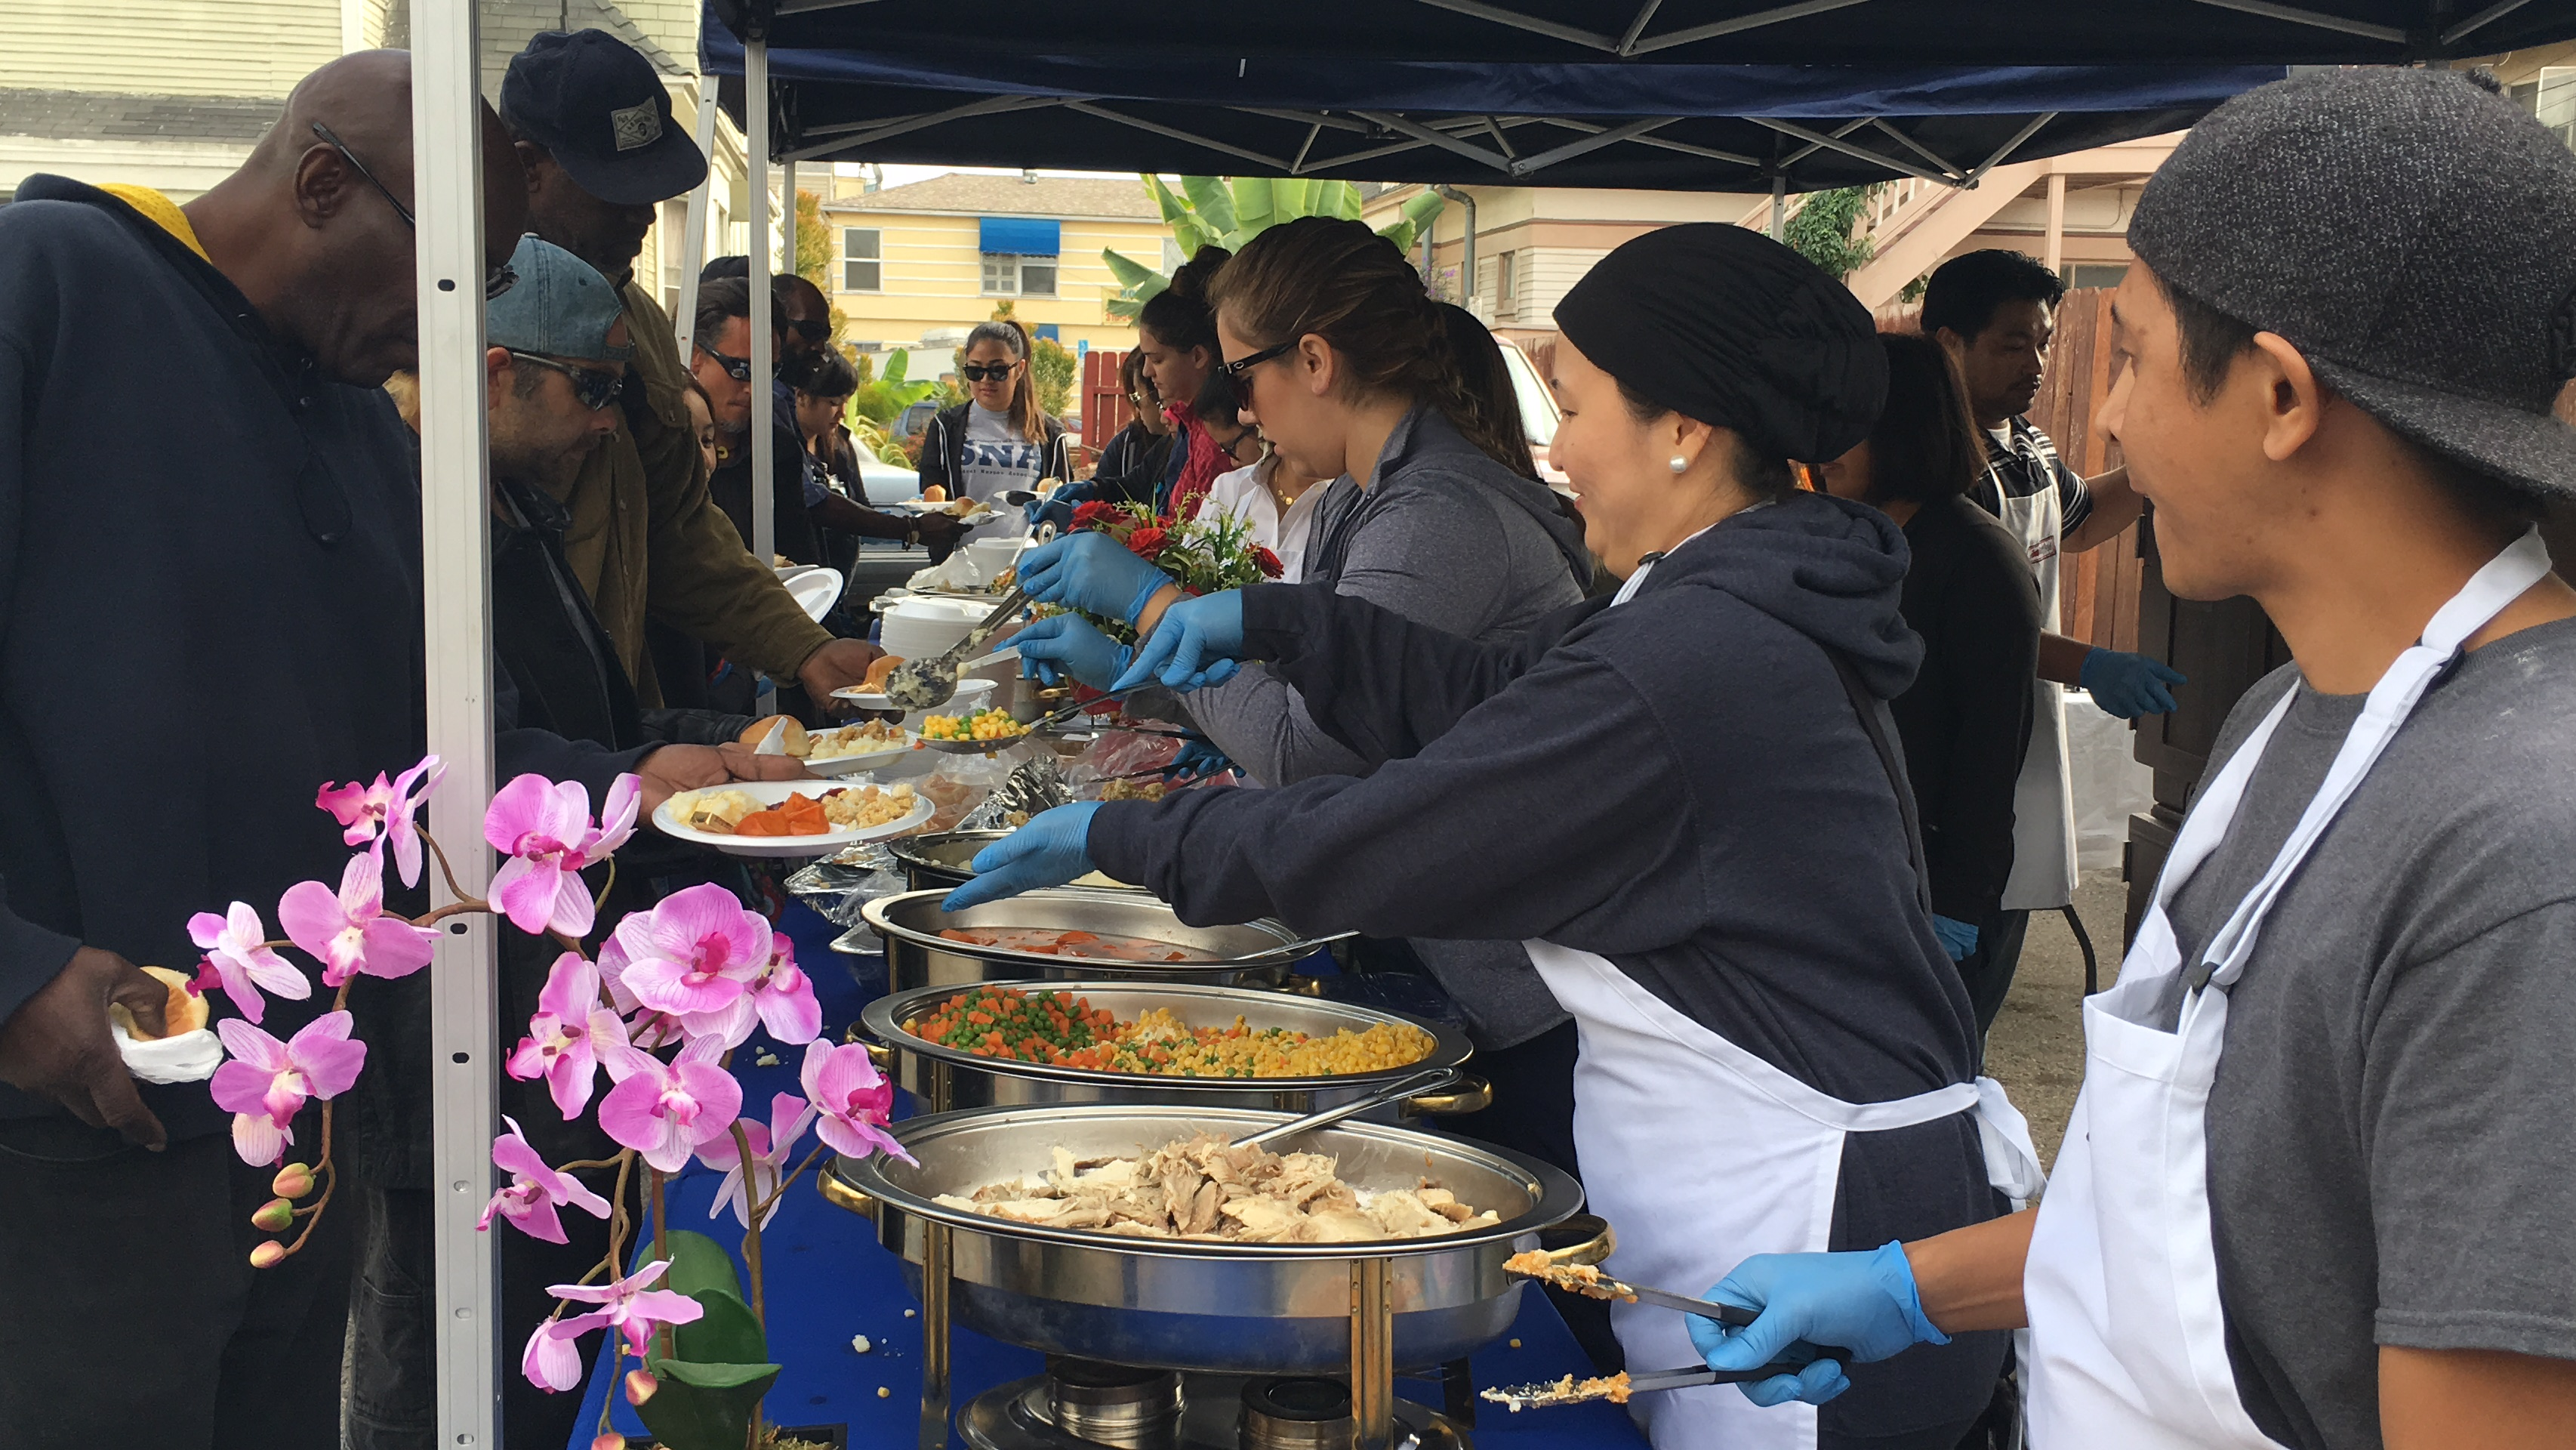 AUHS Gives an Early Thanksgiving Meal to the Homeless